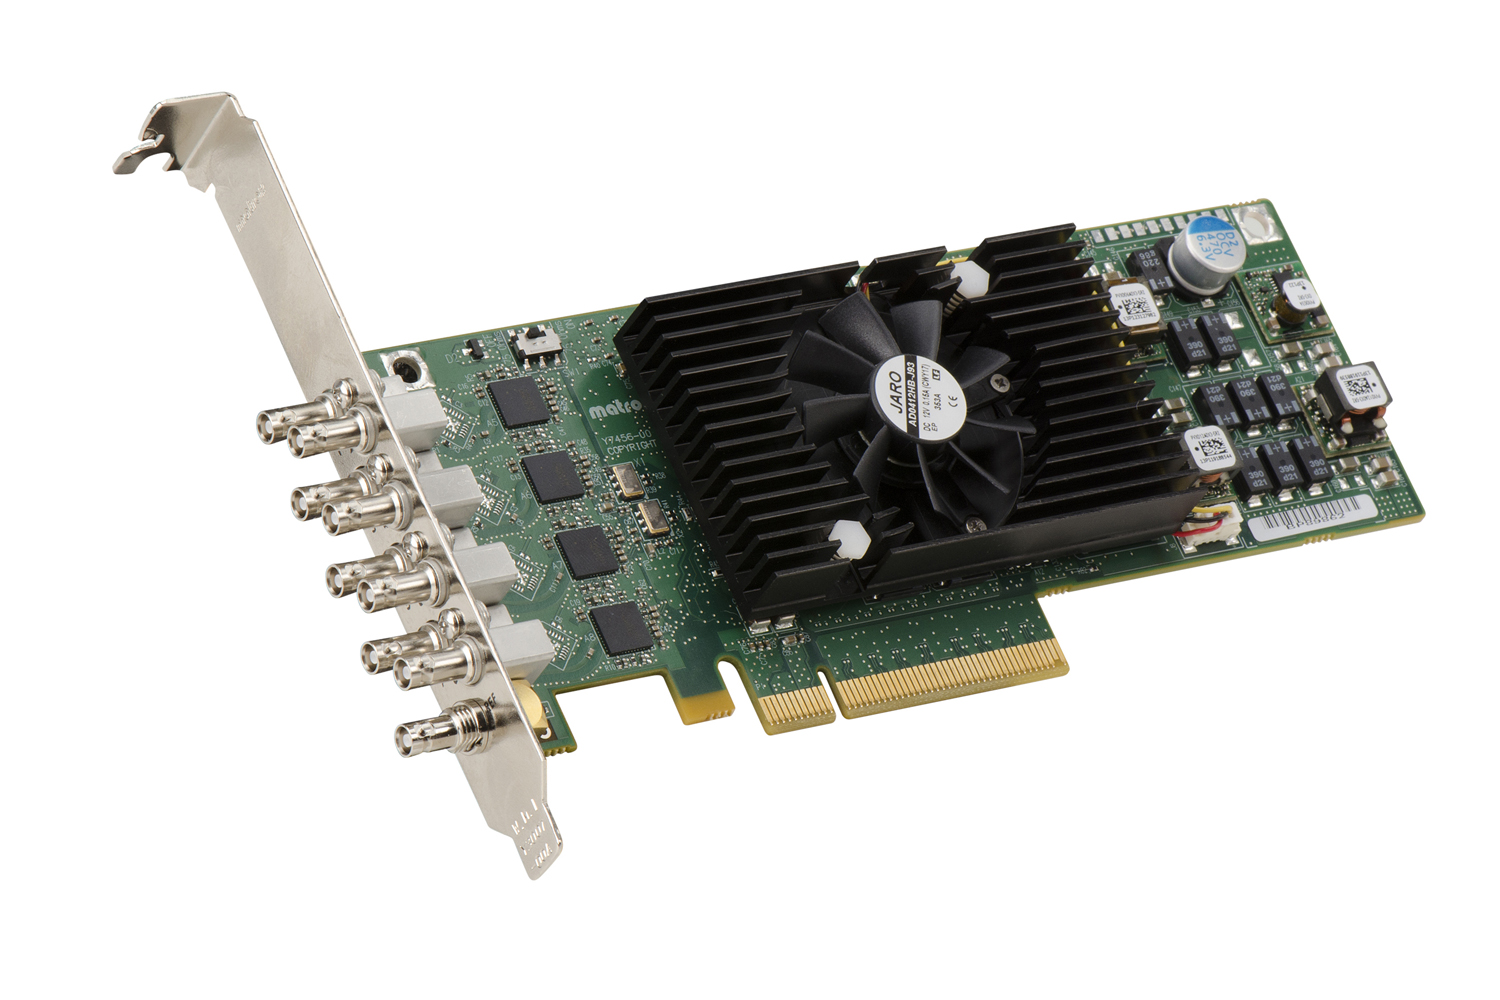 Matrox Announces Low-Profile, Multi-Channel SDI Card with High-Performance Hardware Processing 4